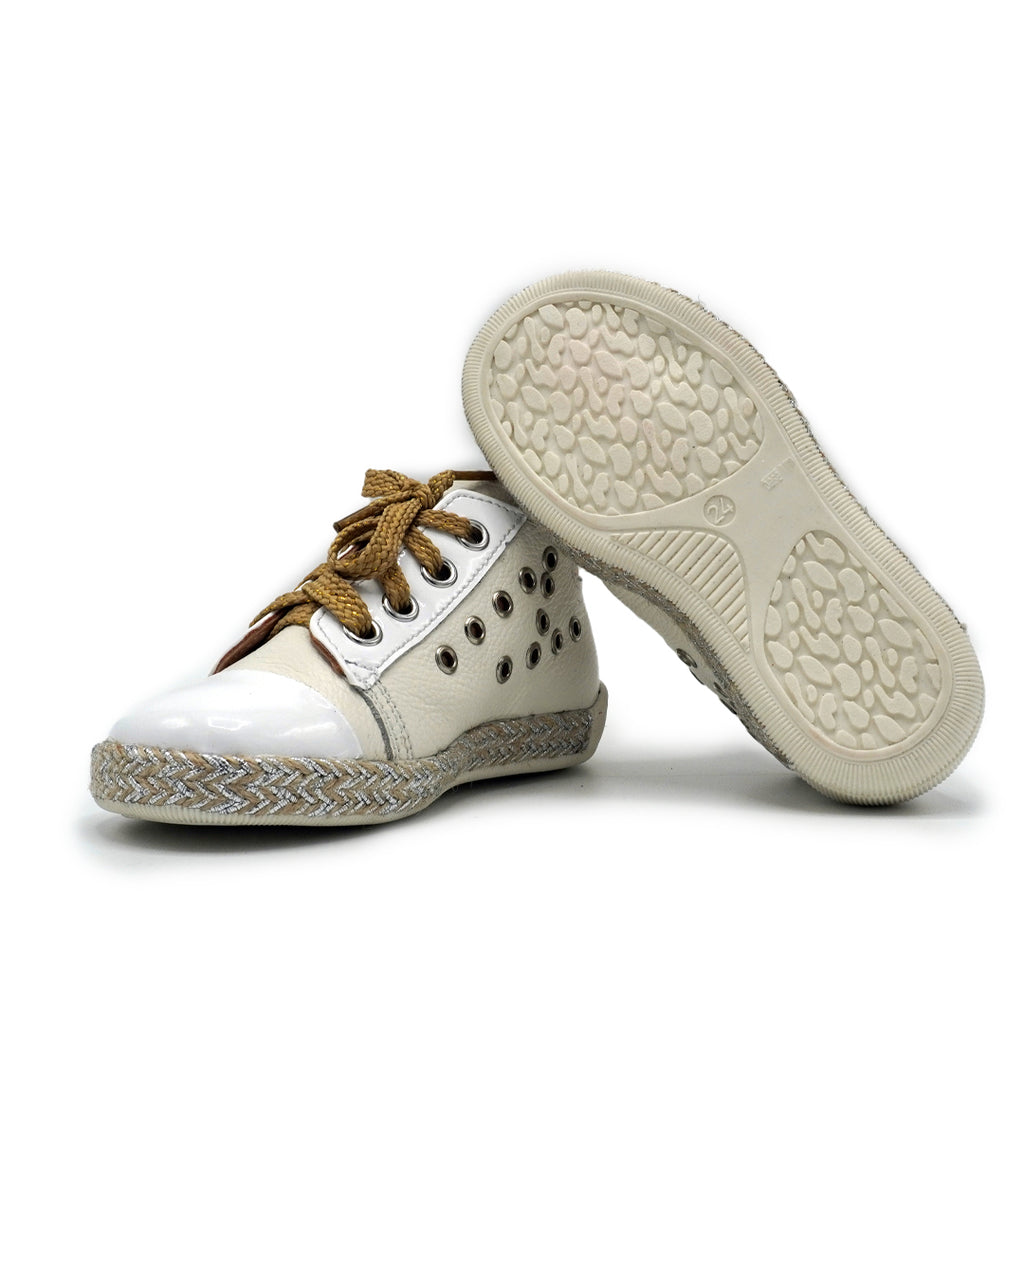 Leather Lace Up Shoes for Toddlers